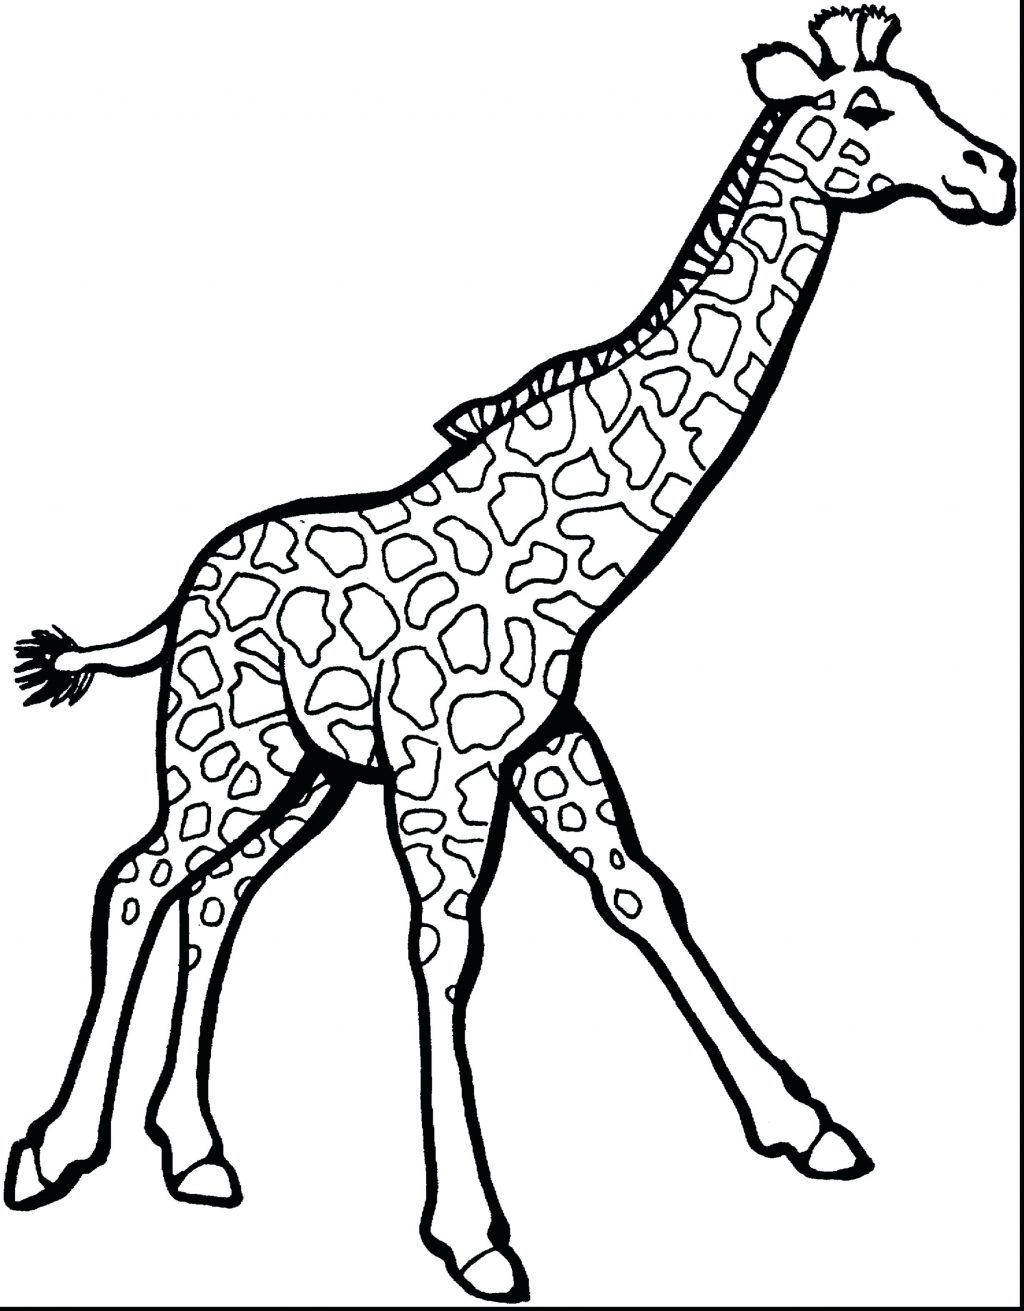 1024x1311 Coloring Pages Zoo Animals Coloring Pages Giraffe Cartoon Page